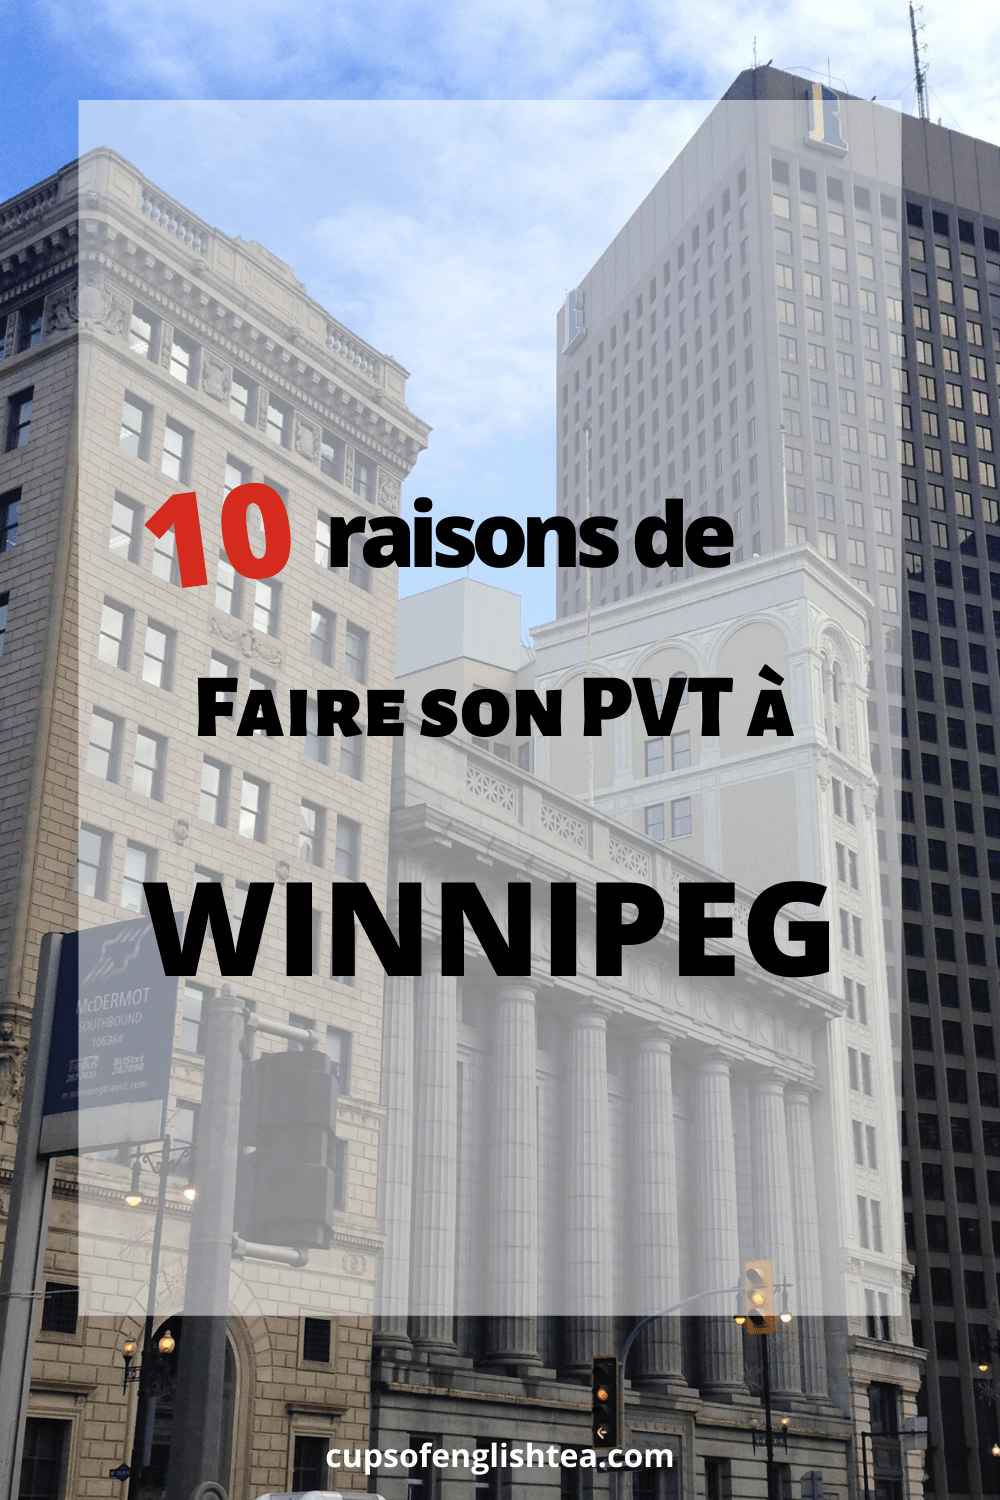 10 raisons de faire son PVT Canada à Winnipeg